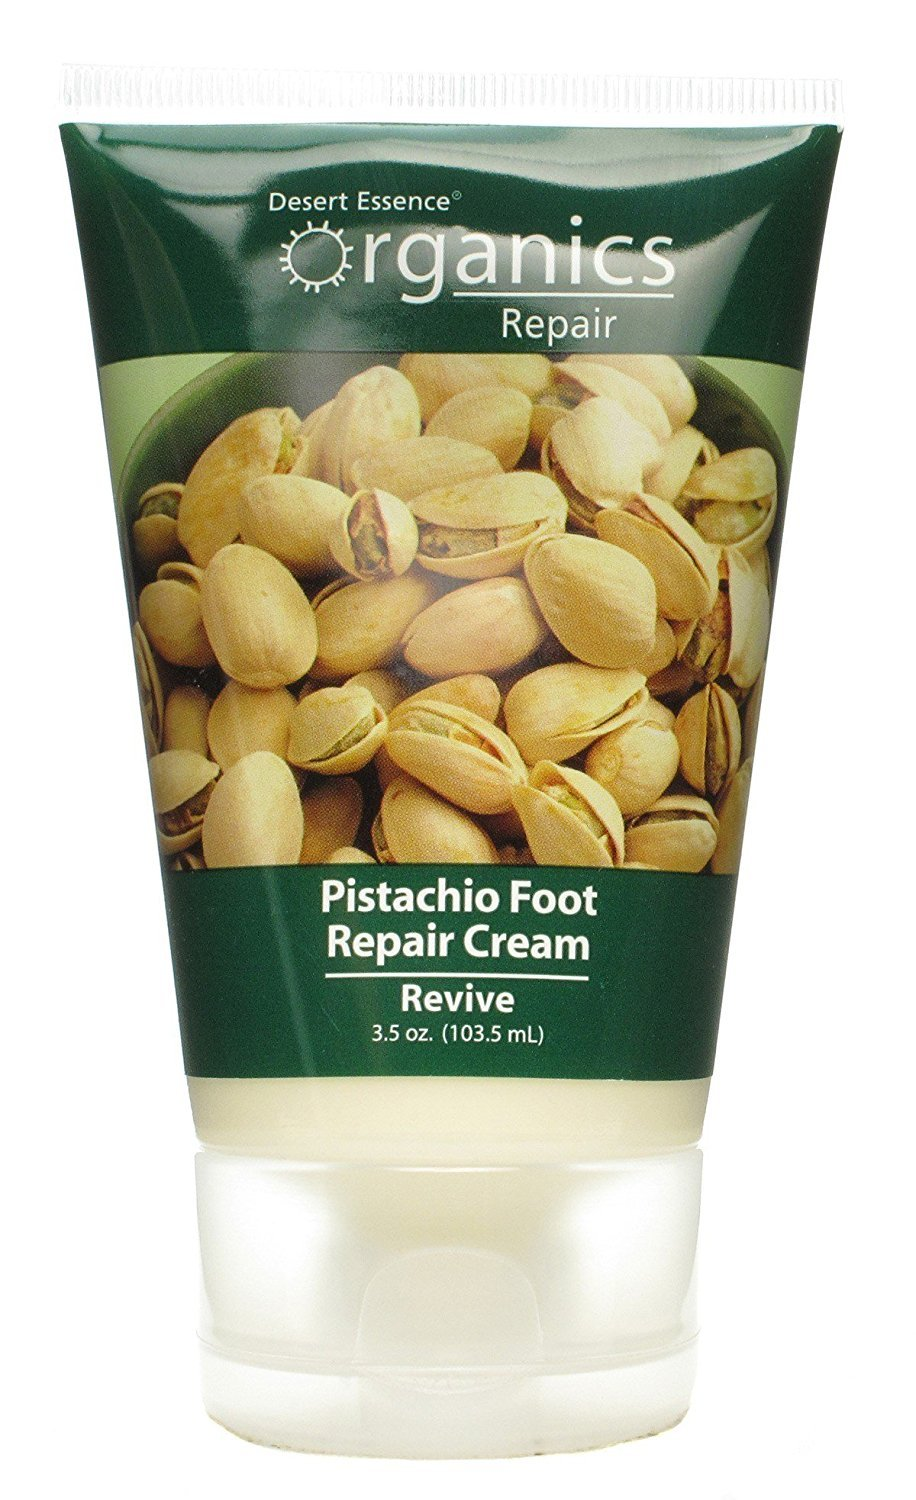 Desert Essence Organic Foot Repair Cream Pistachio - 3 fl oz BHBAZUSF0518A3893